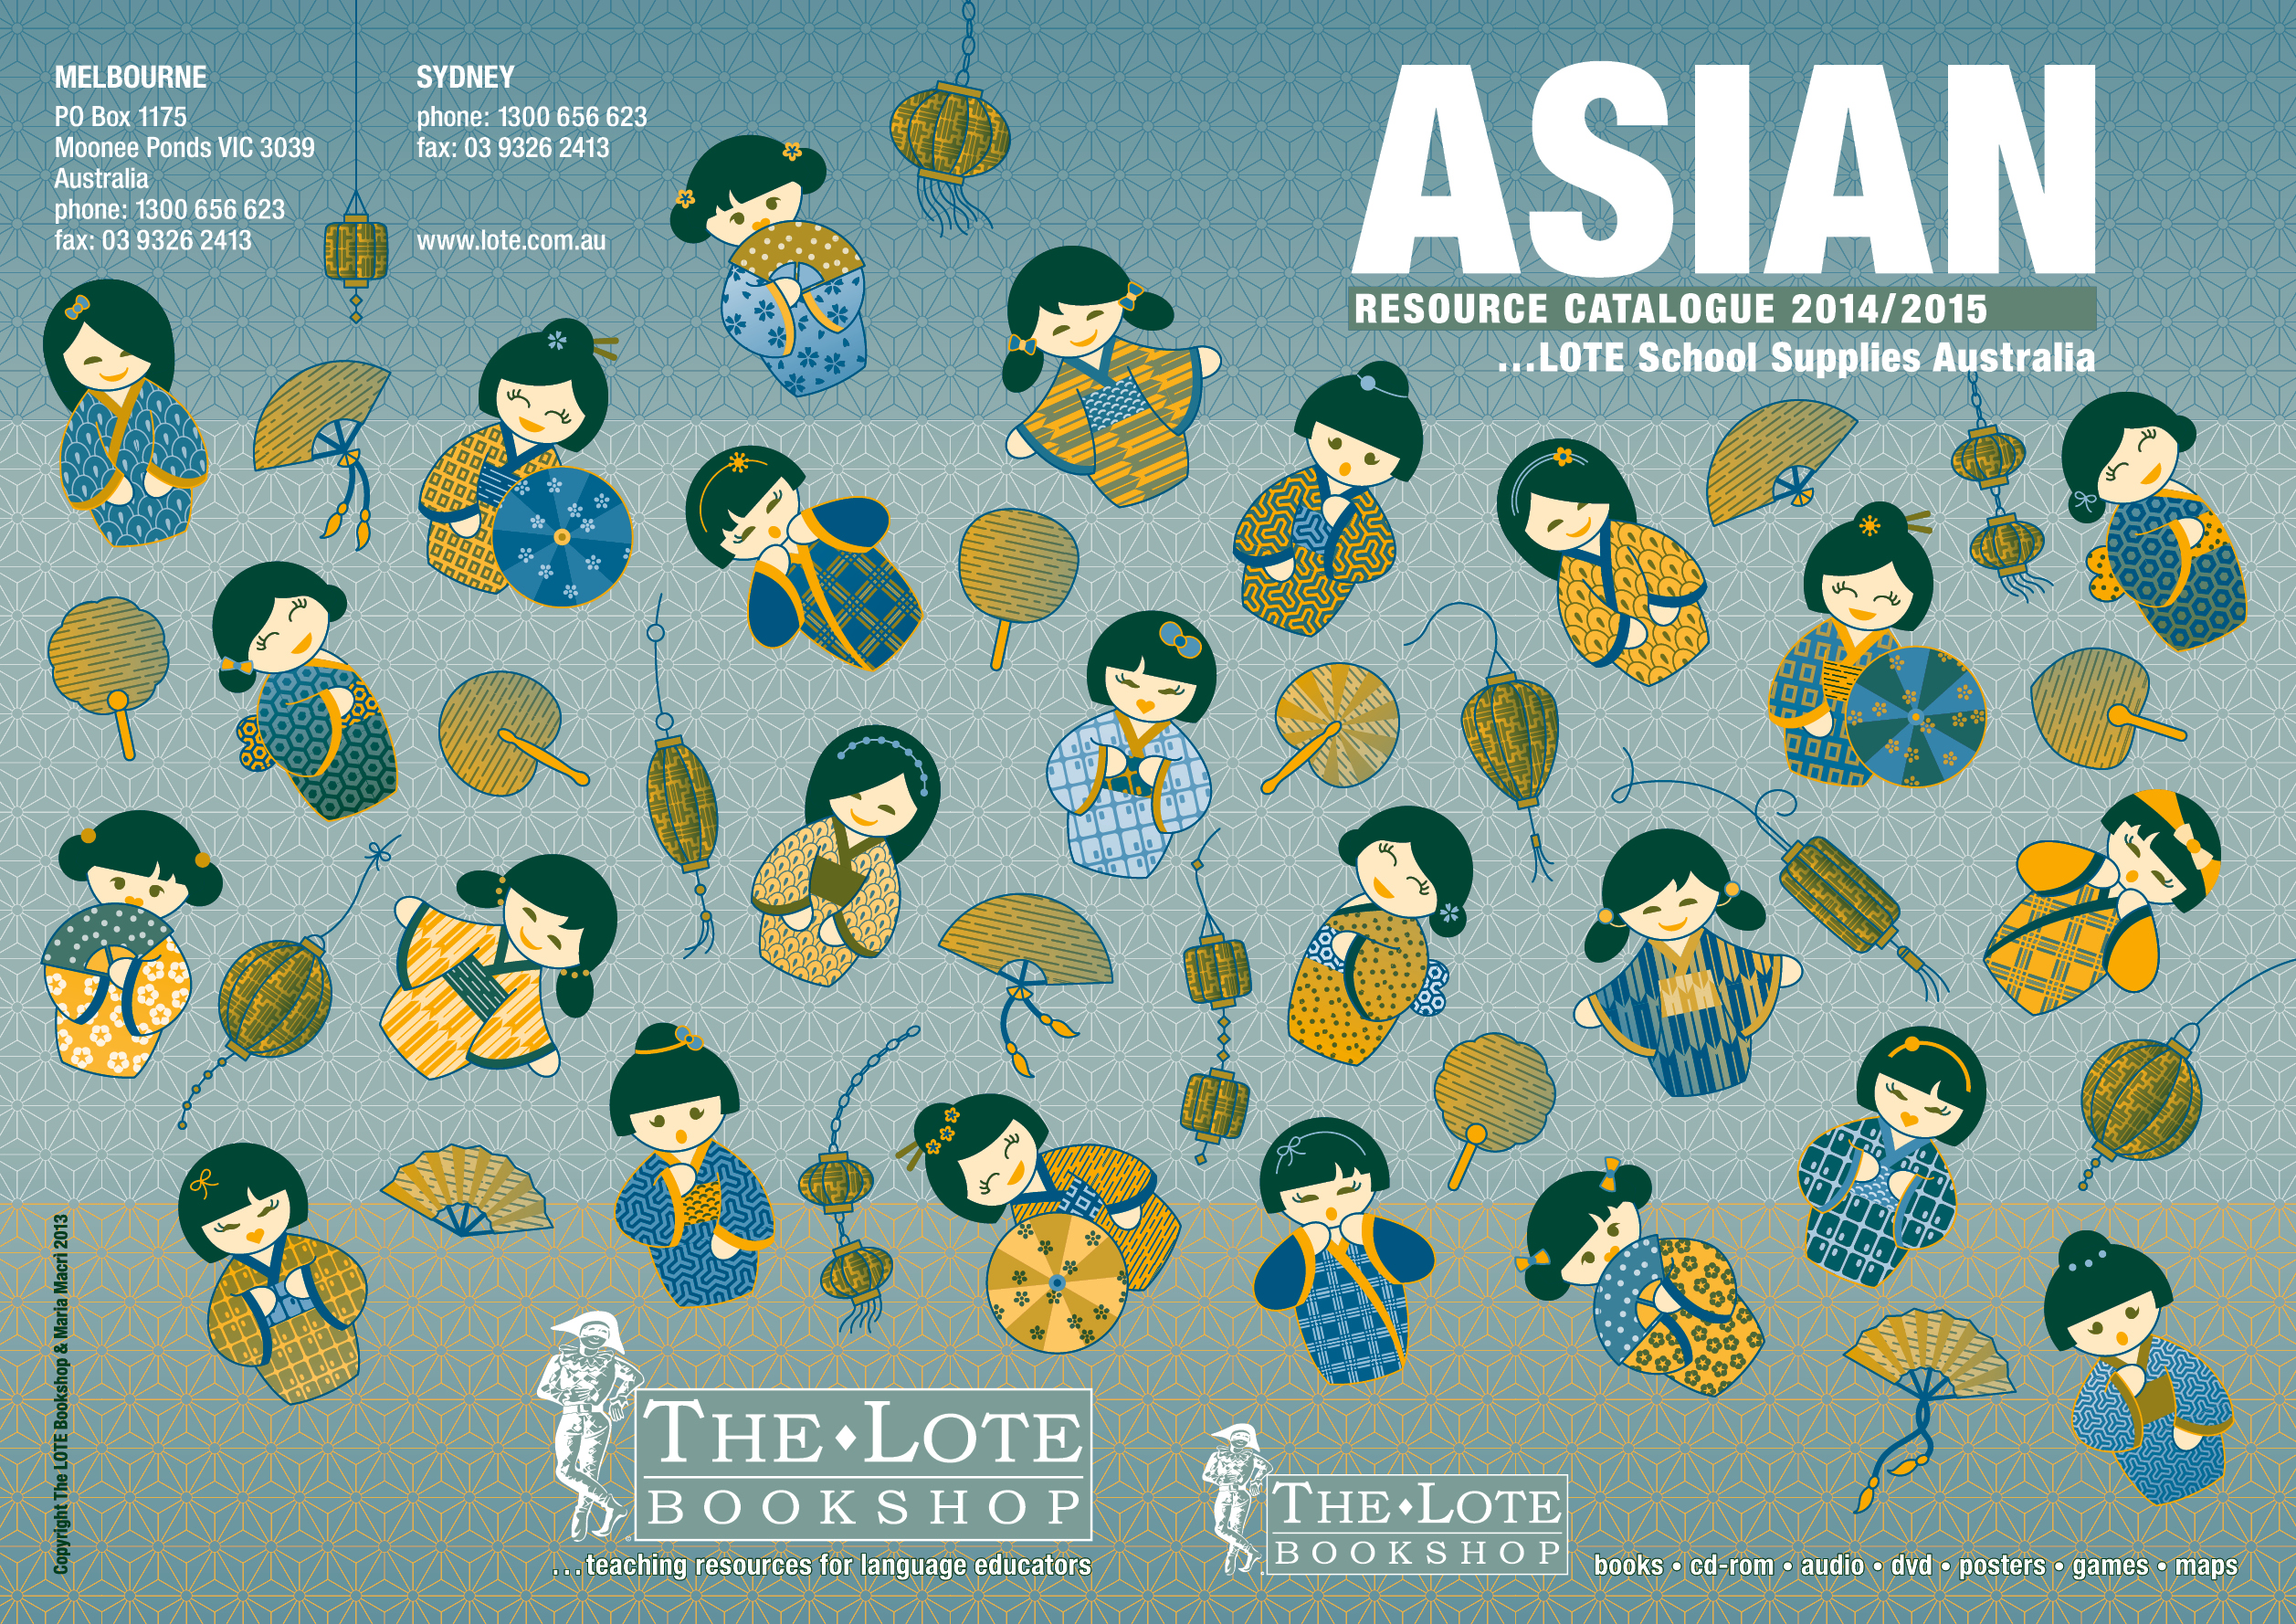 LOTE Asian 2014/15 catalogue cover design